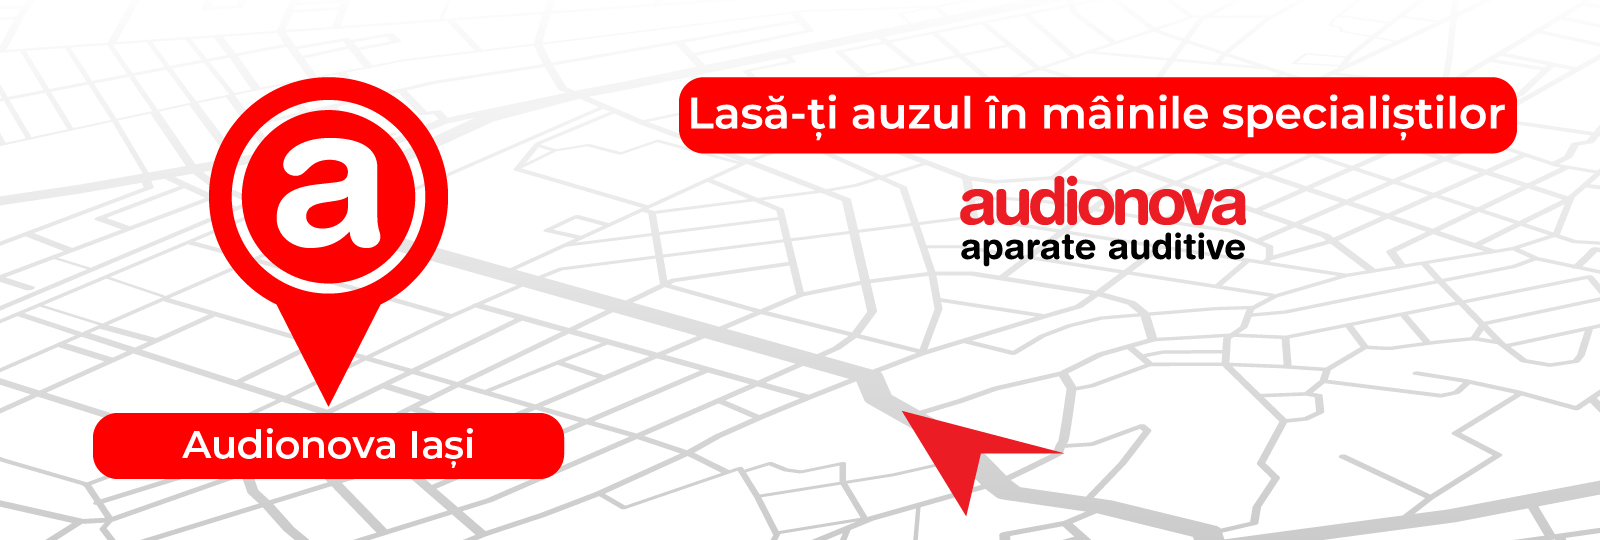 aparate auditive iasi